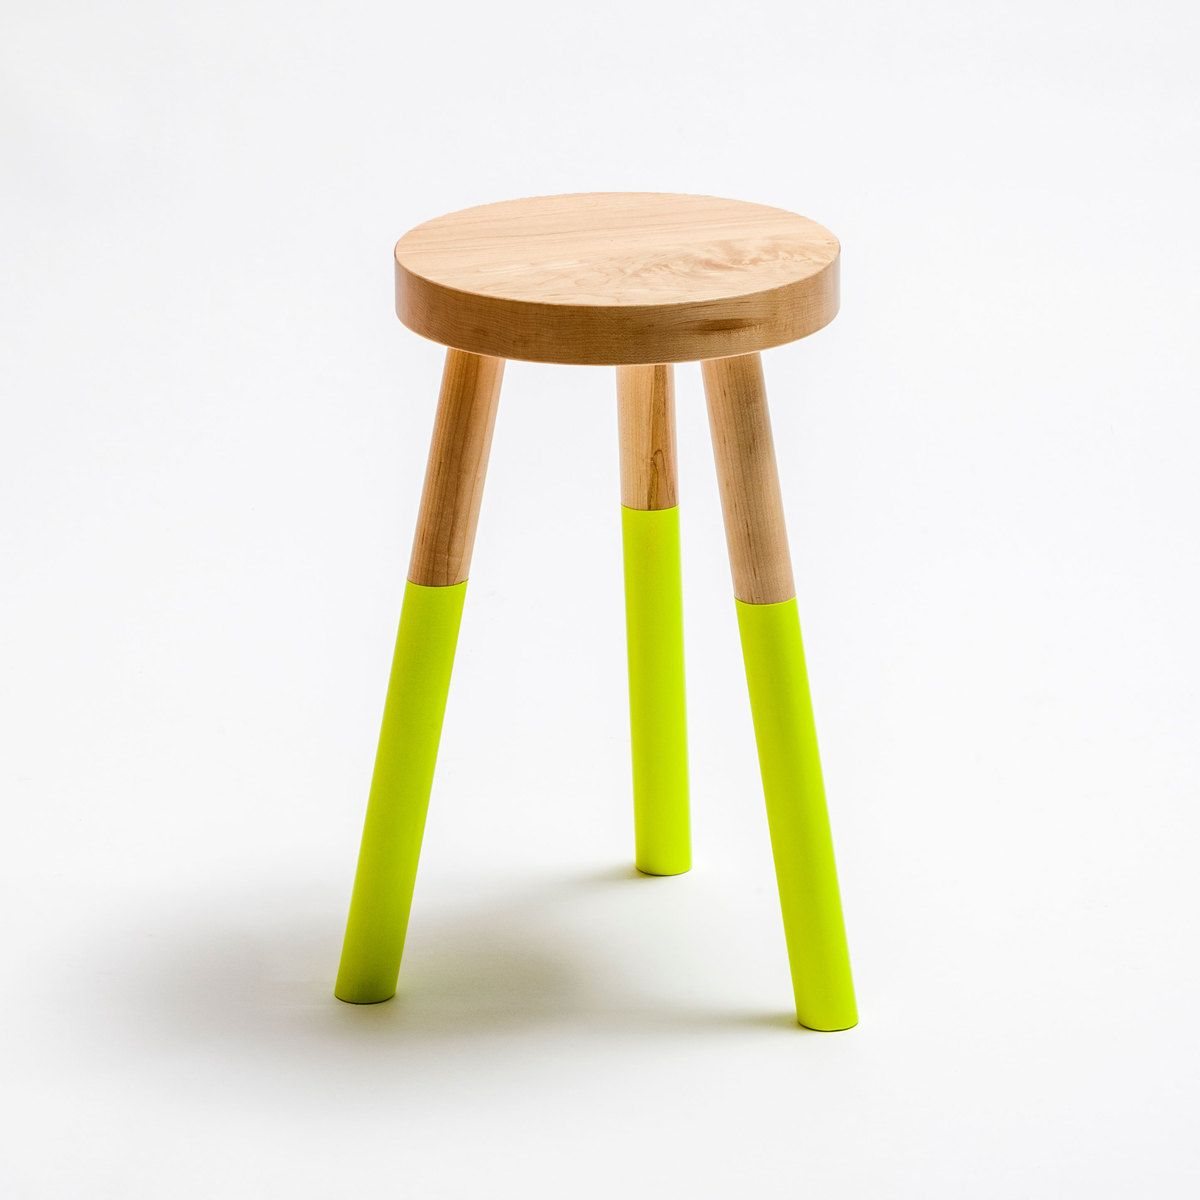 Dipped Stools Thinking Of Moving My Son S Toddler Desk And